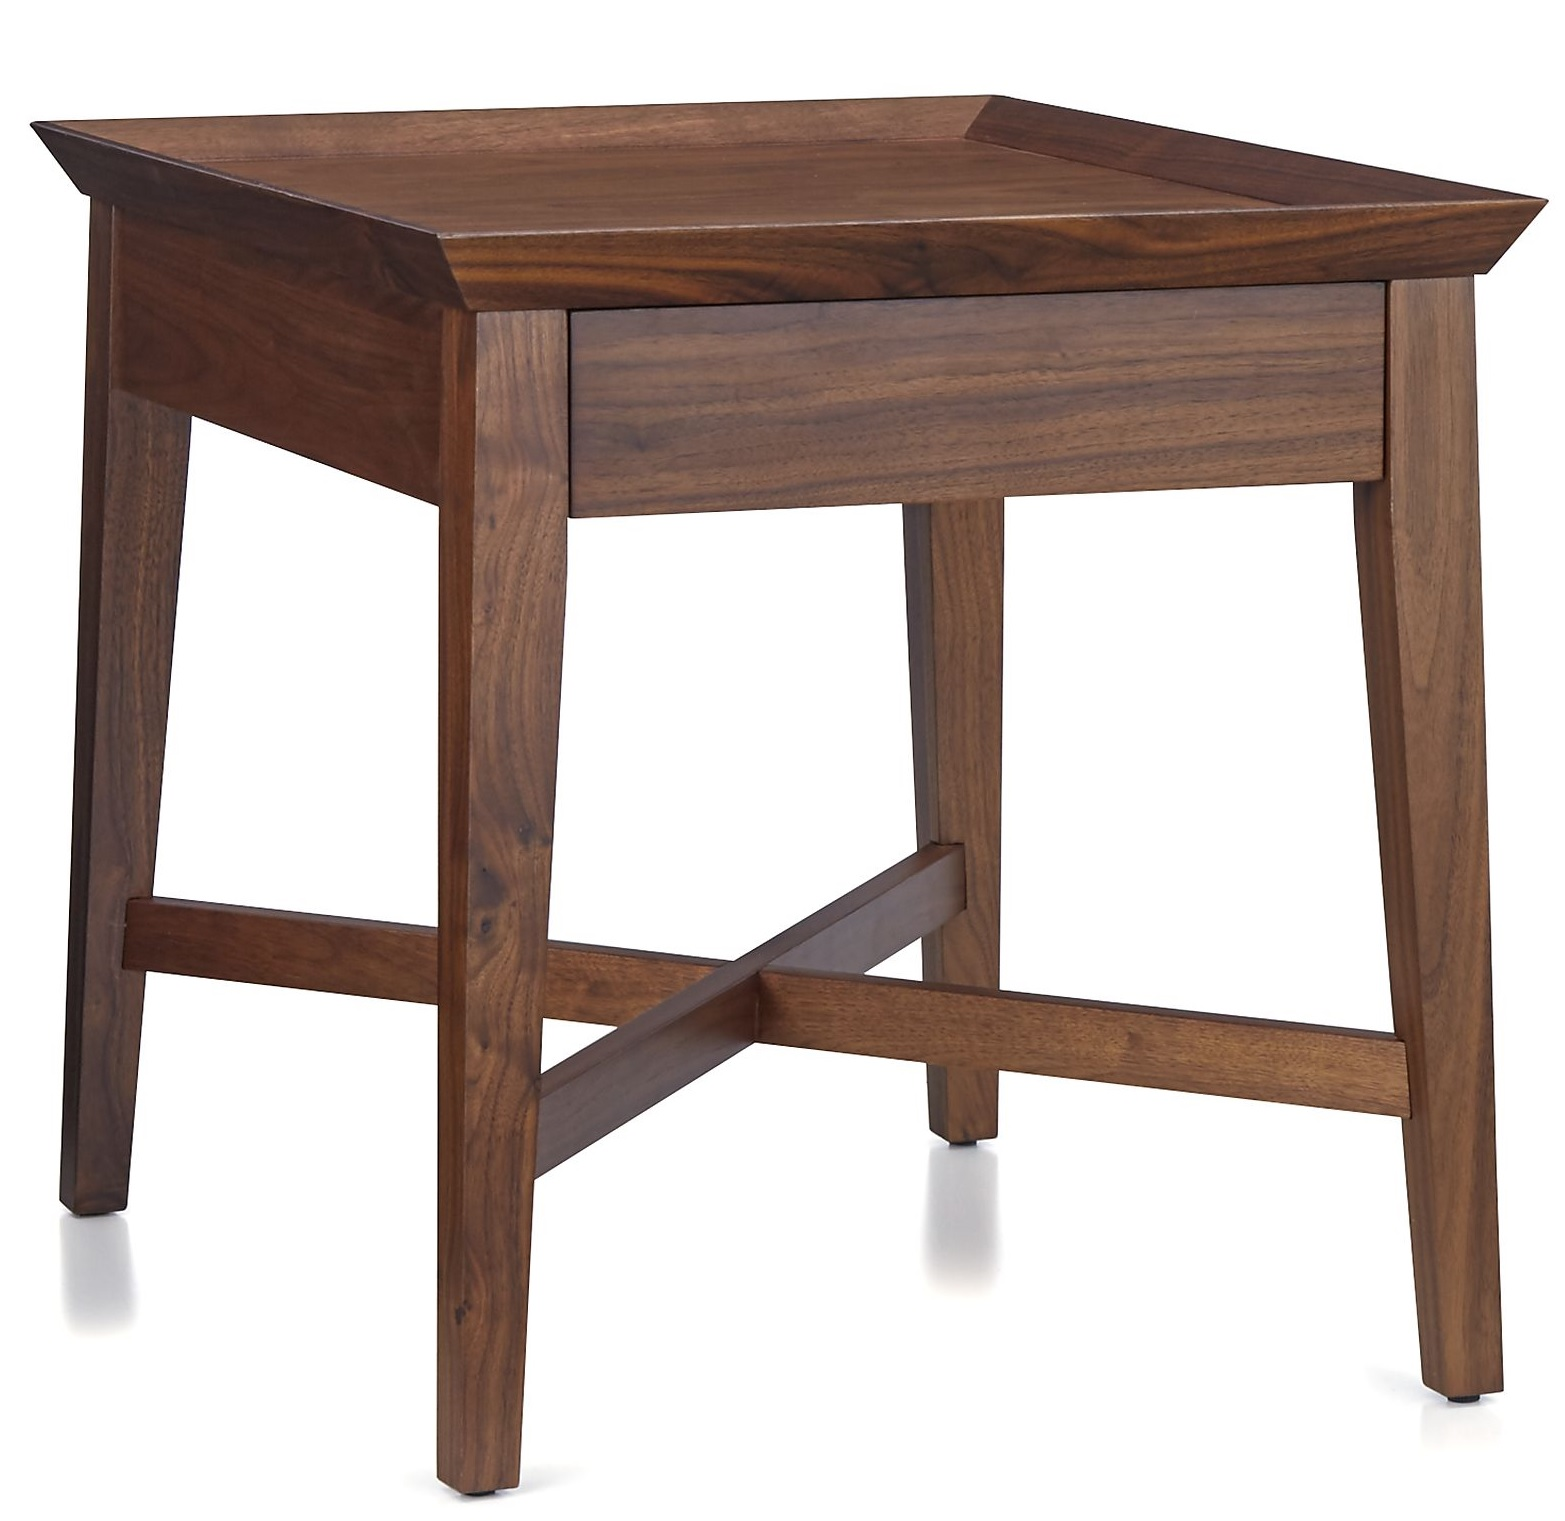 Bradley side table with drawer costa rican furniture for 12 end table